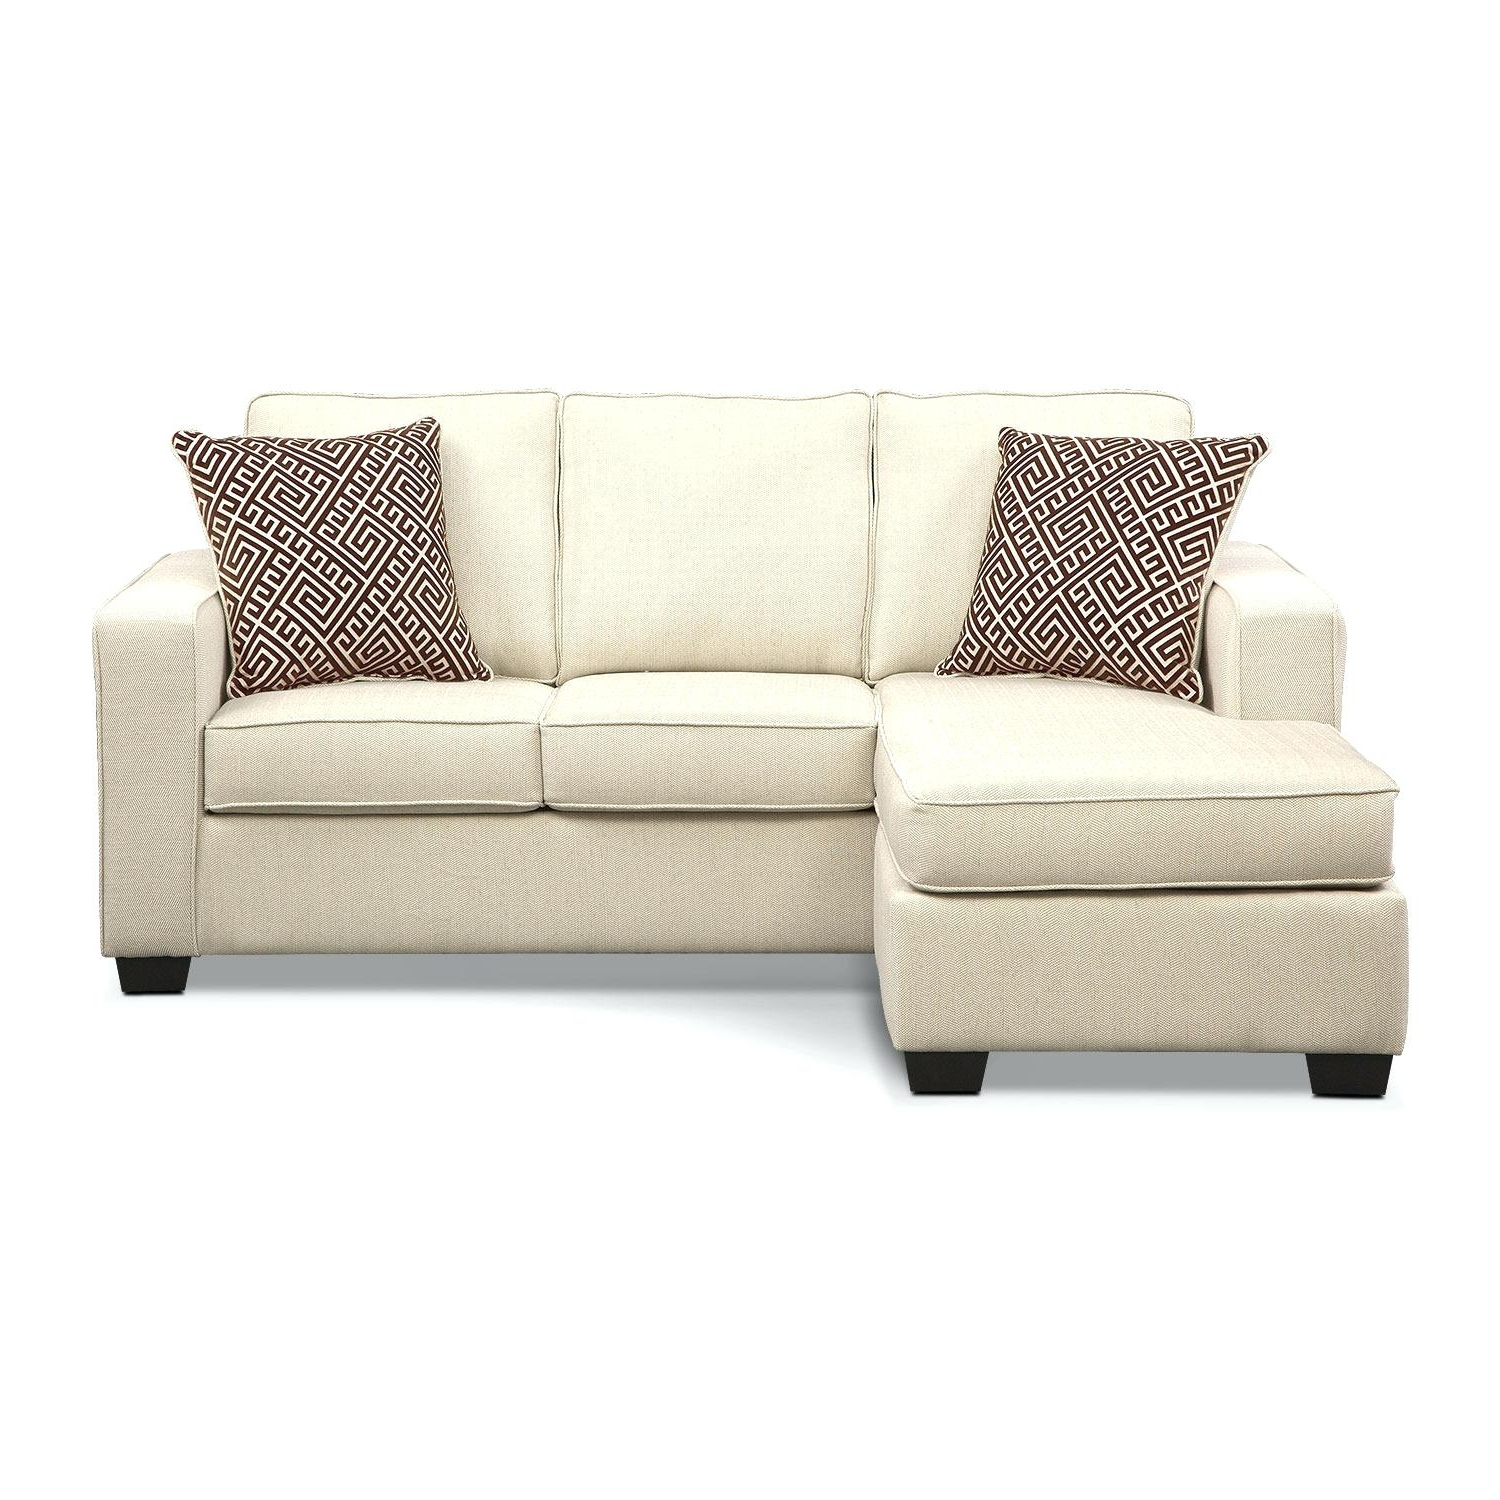 City Sofa Beds Inside 2019 City Furniture Sofa Beds Futon Bed With Storage Hazelnut Value (View 8 of 20)